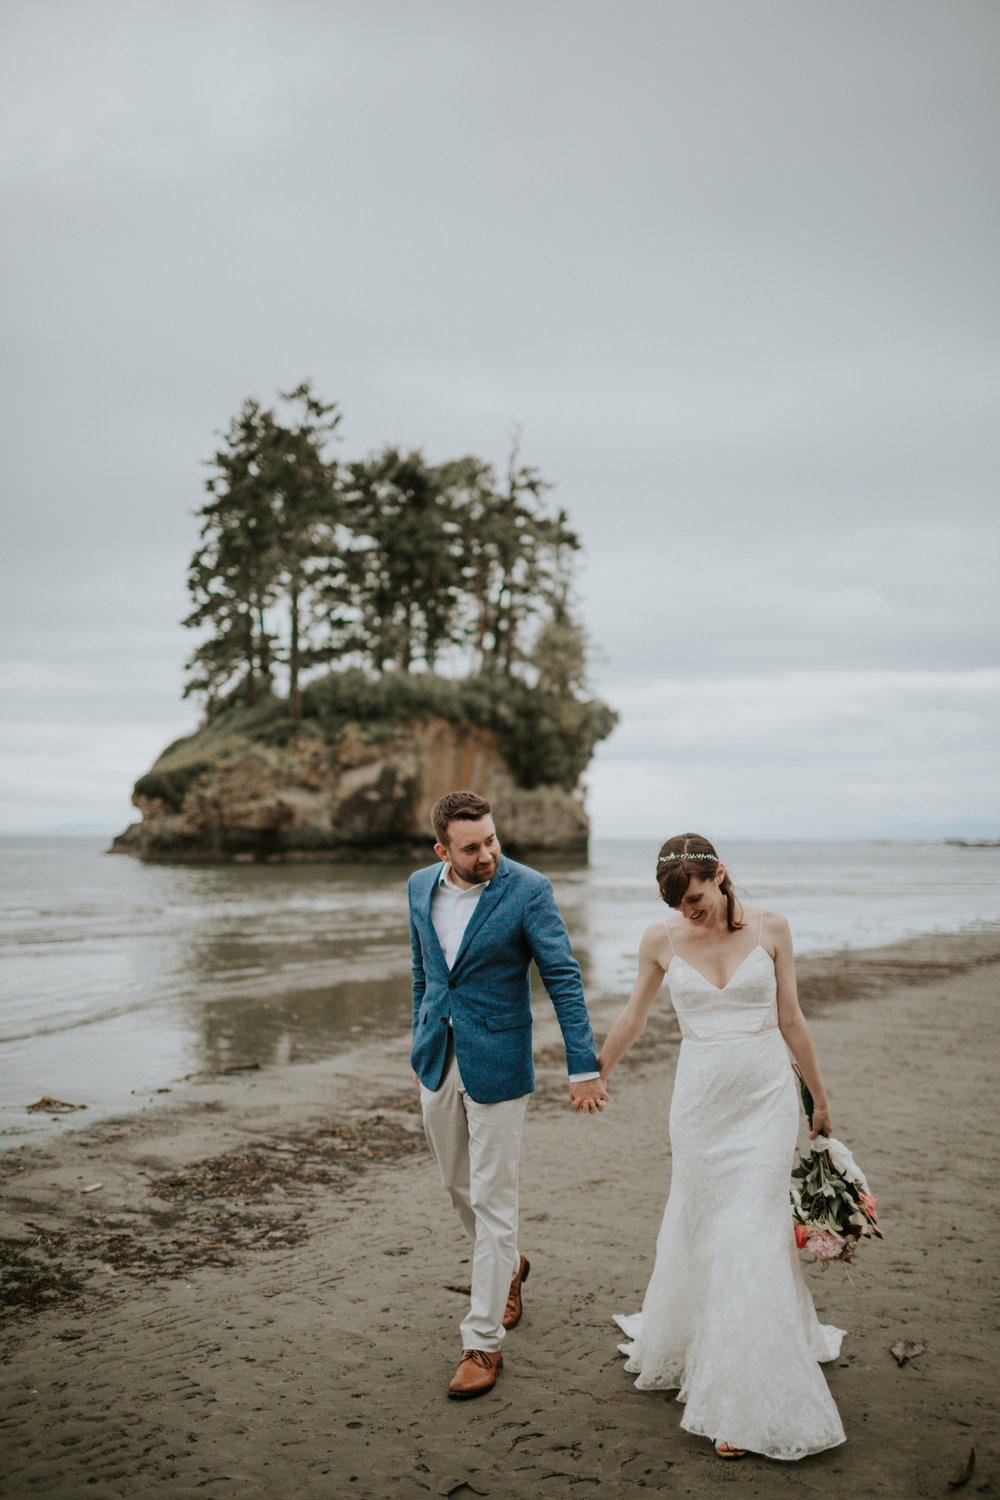 PNW-elopement-wedding-engagement-olympic national park-port angeles-hurricane ridge-lake crescent-kayla dawn photography- photographer-photography-kayladawnphoto-300.jpg